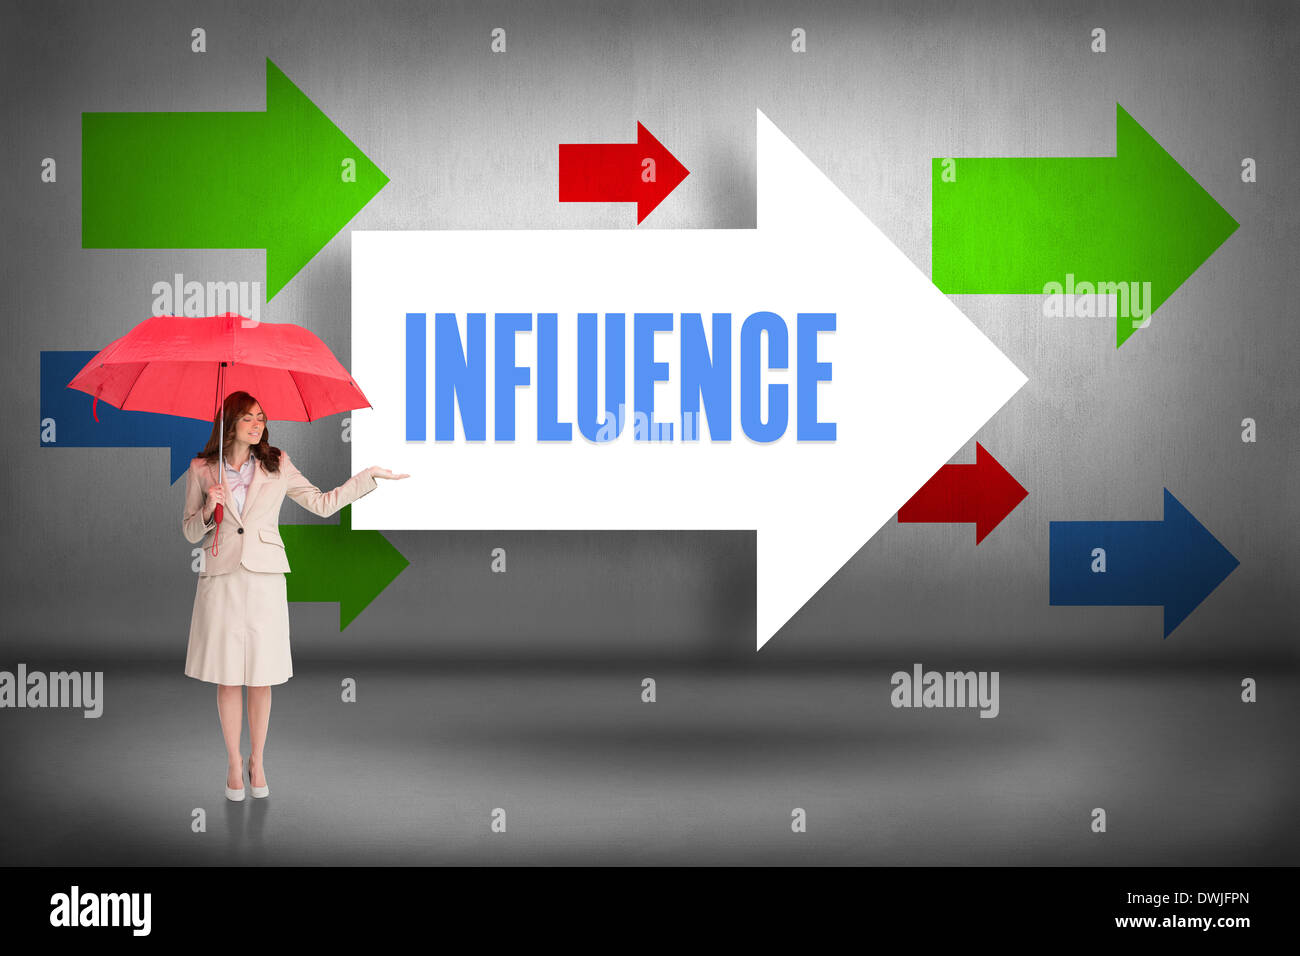 Influence against arrows pointing - Stock Image